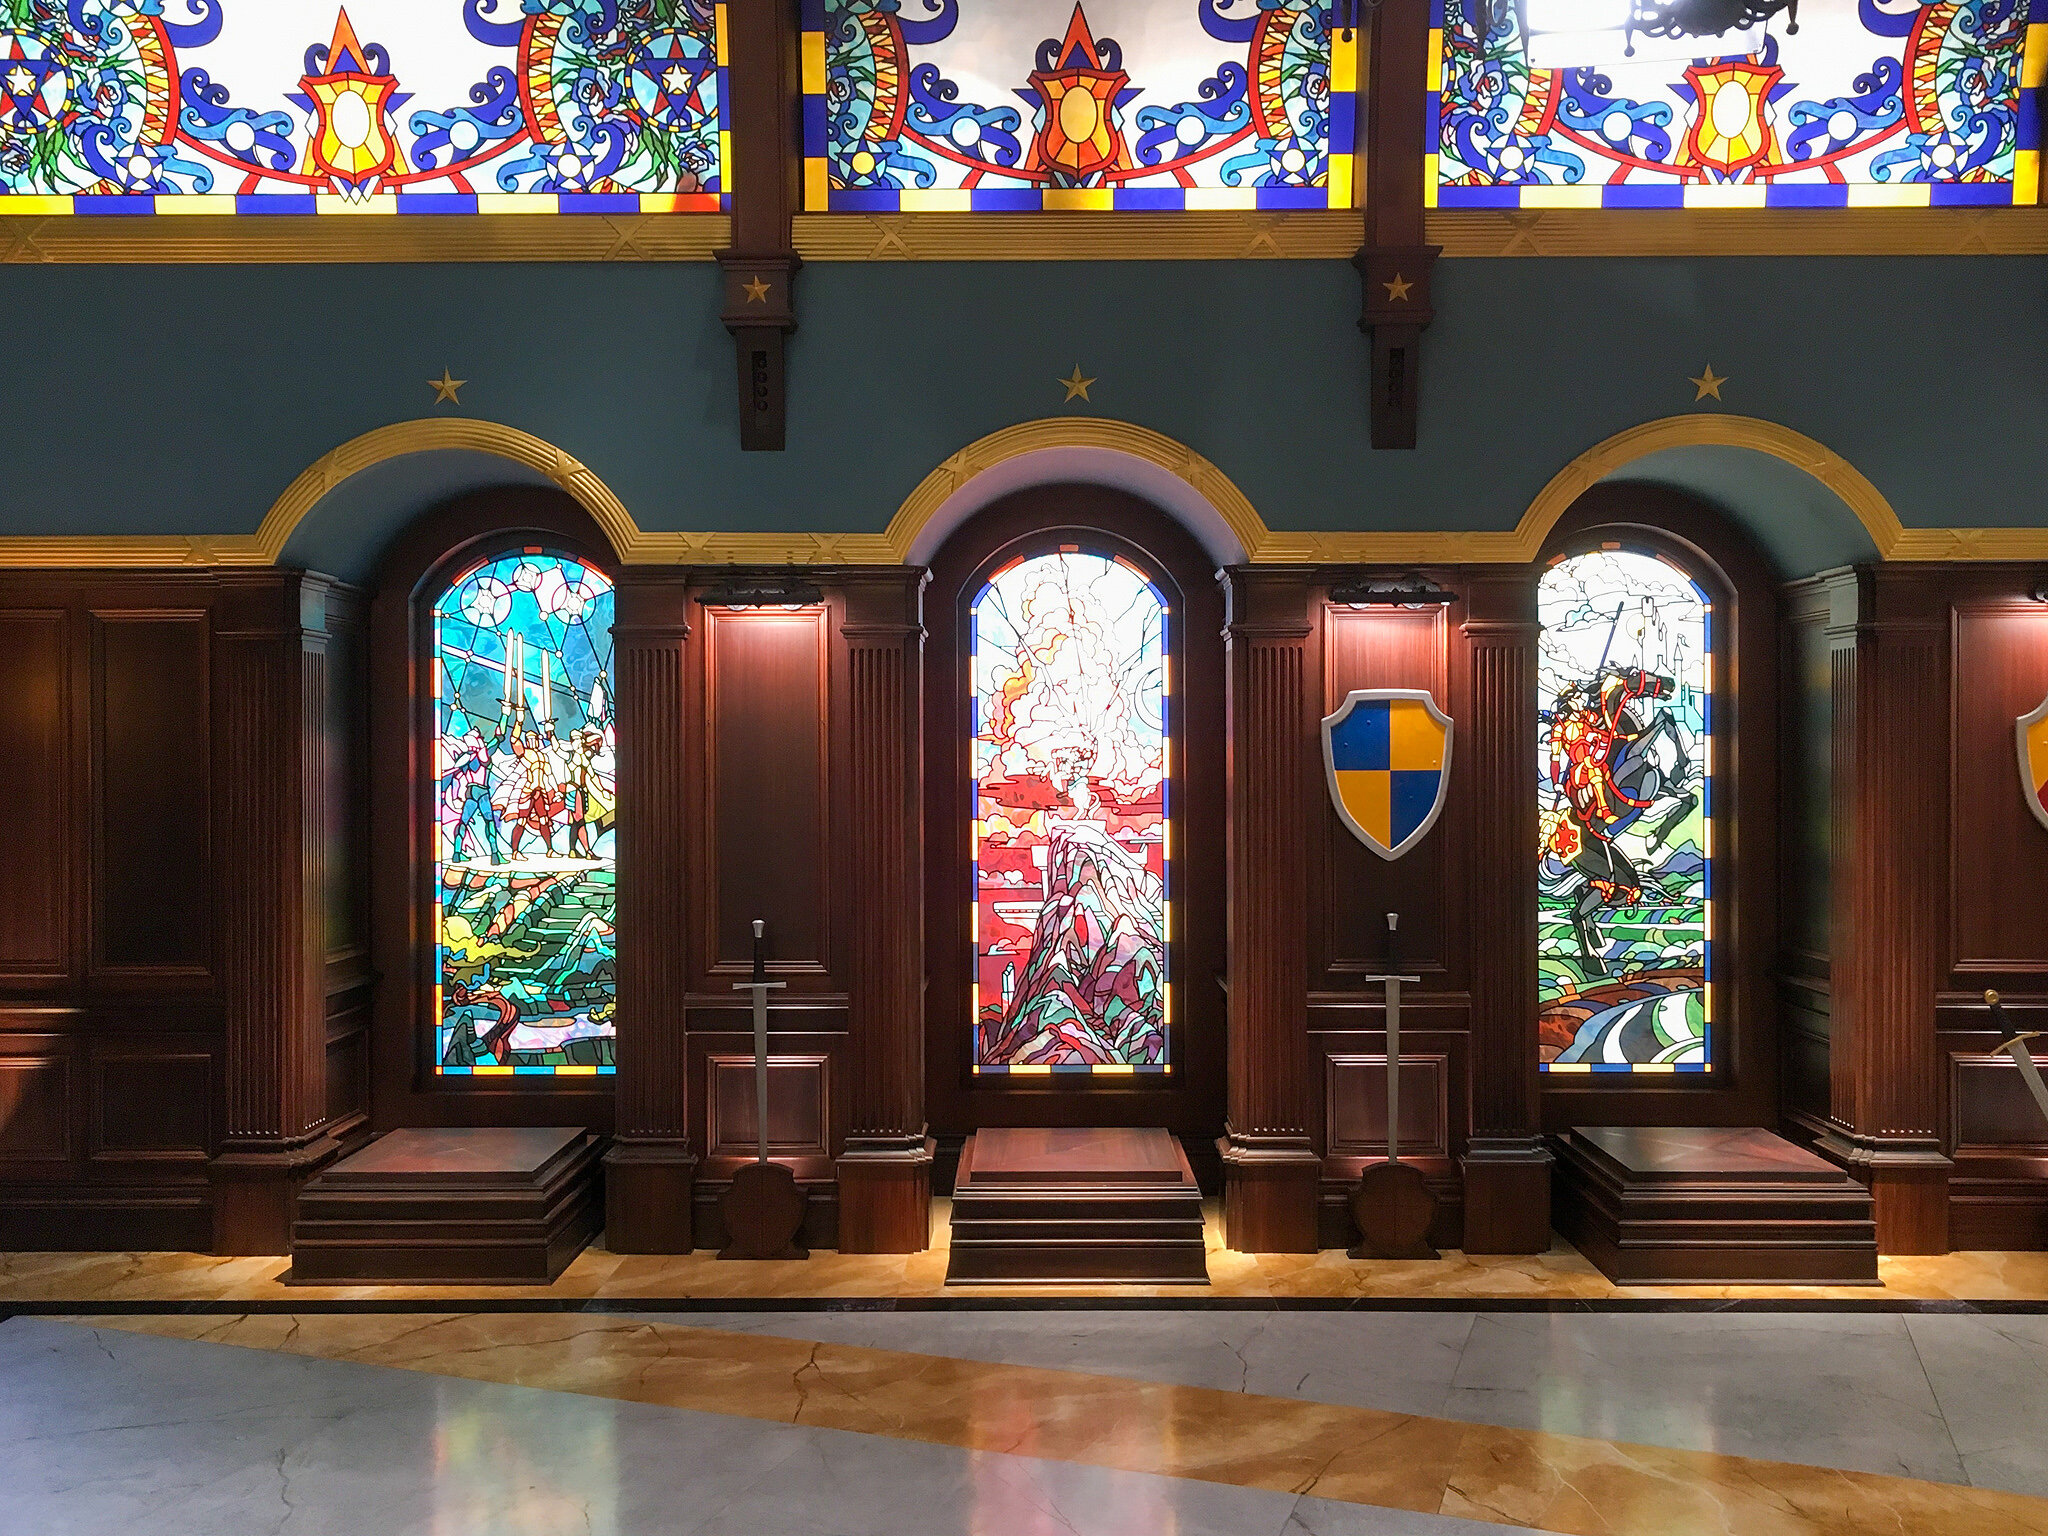 There were 13 niches to display the suits of armor in Auradon's royal palace armory and each one was backlit by a stained glass window with a unique narrative of mythical chivalry.